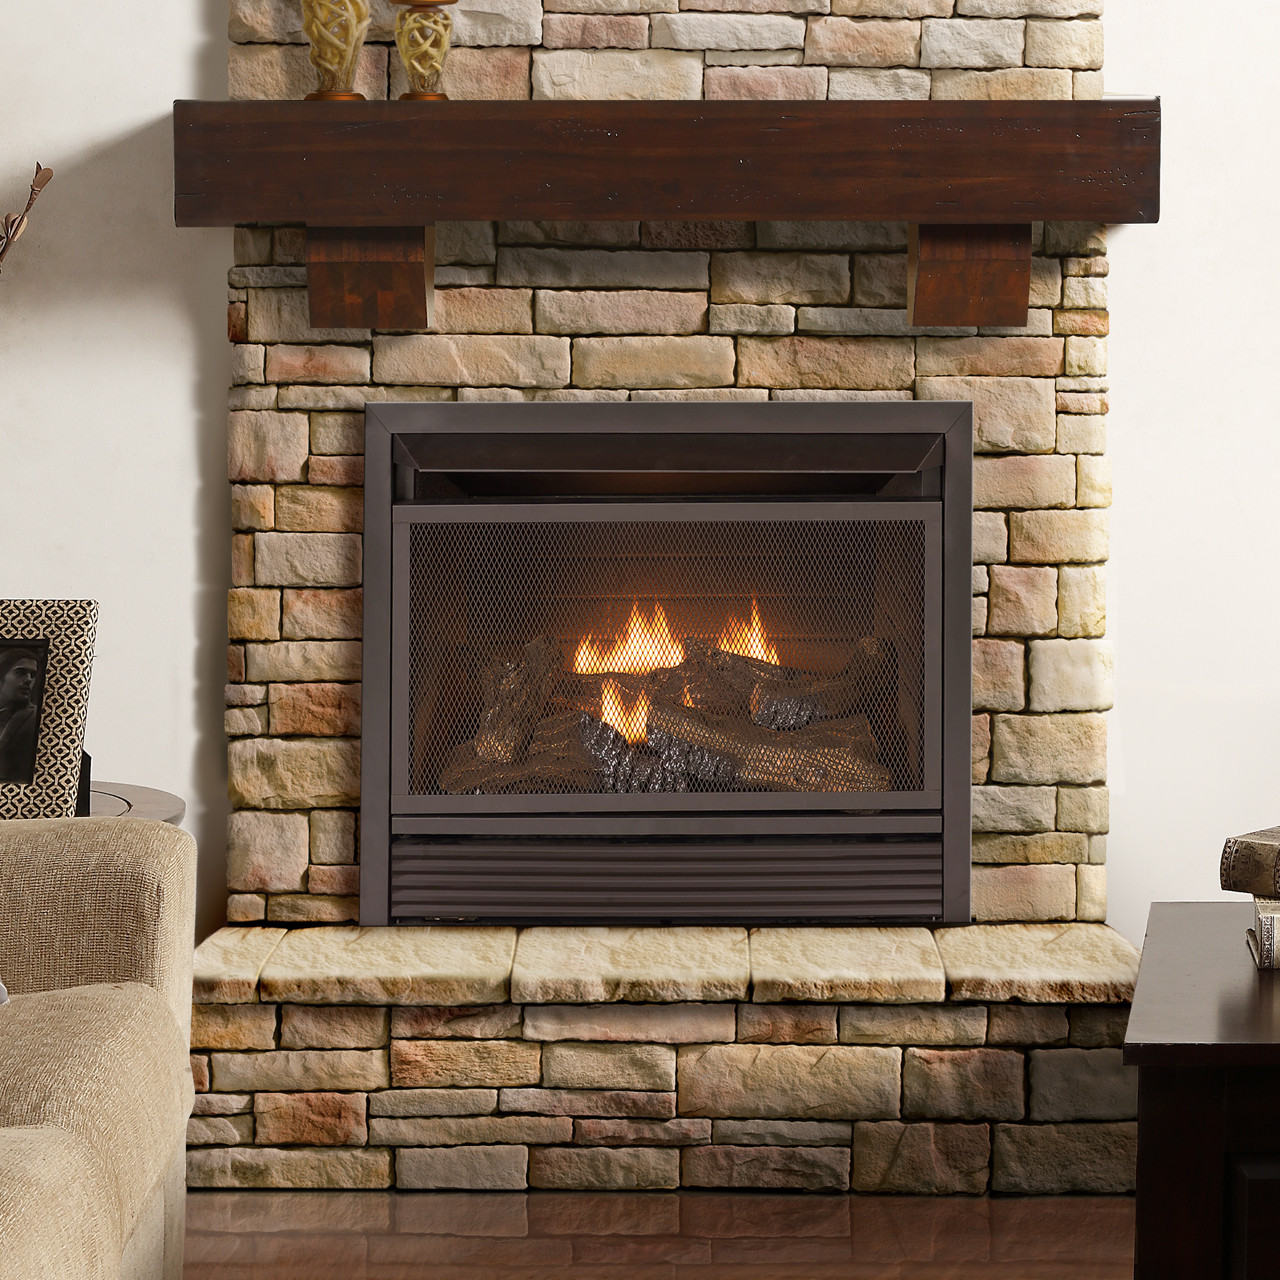 duluth forge 60 inch fireplace shelf mantel with corbels antique rh factorybuysdirect com